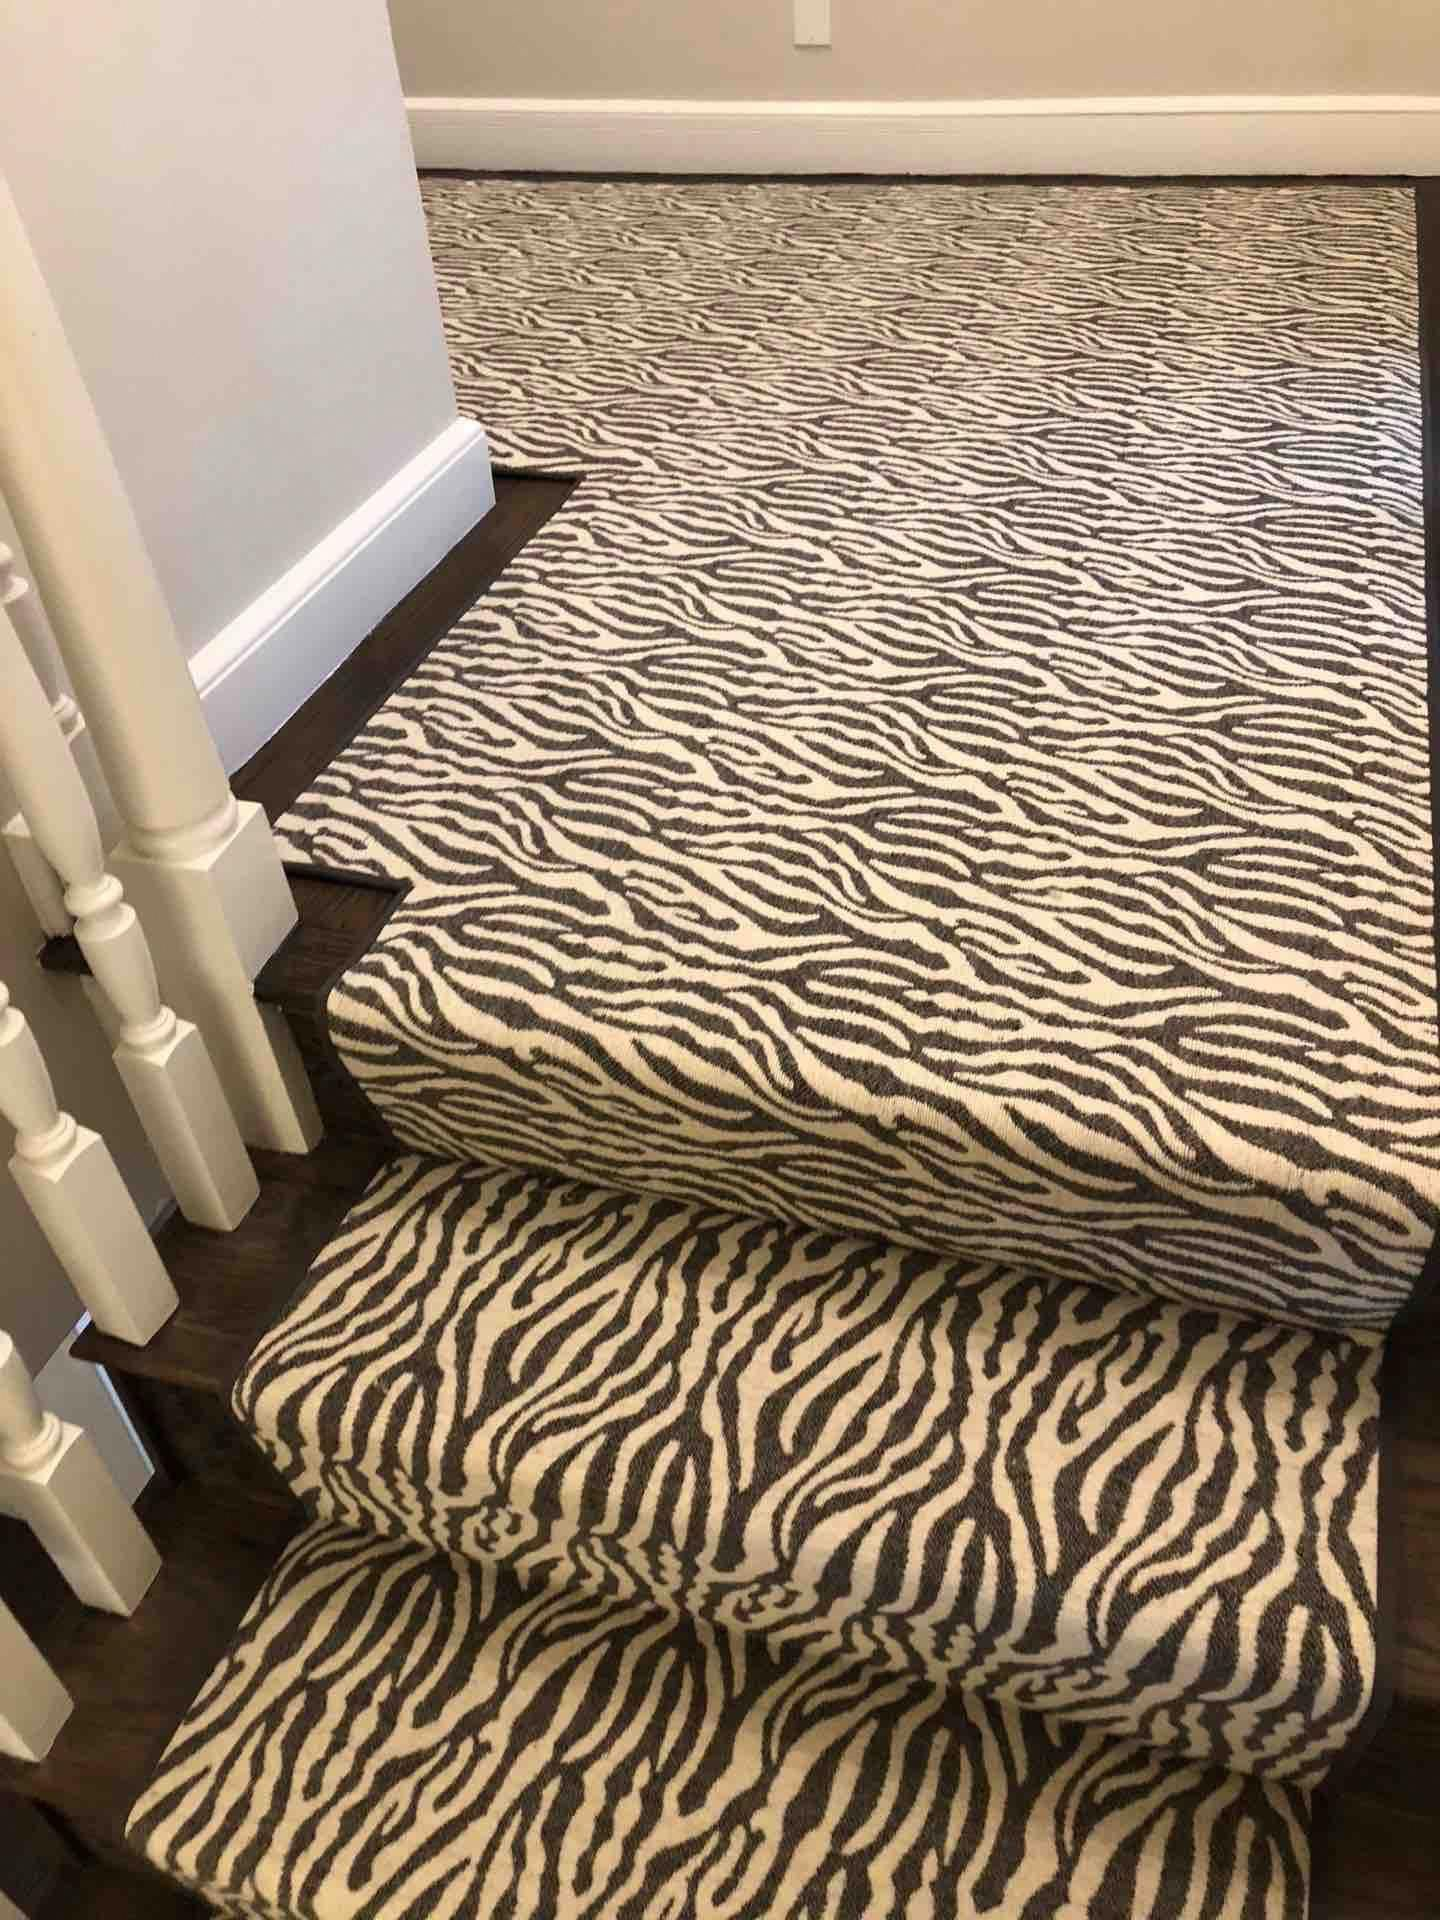 Carpet Runners For Sale Melbourne Carpetrunnersbytheroll Key 4980391535 Carpet Stairs Patterned Stair Carpet Stair Runner Carpet